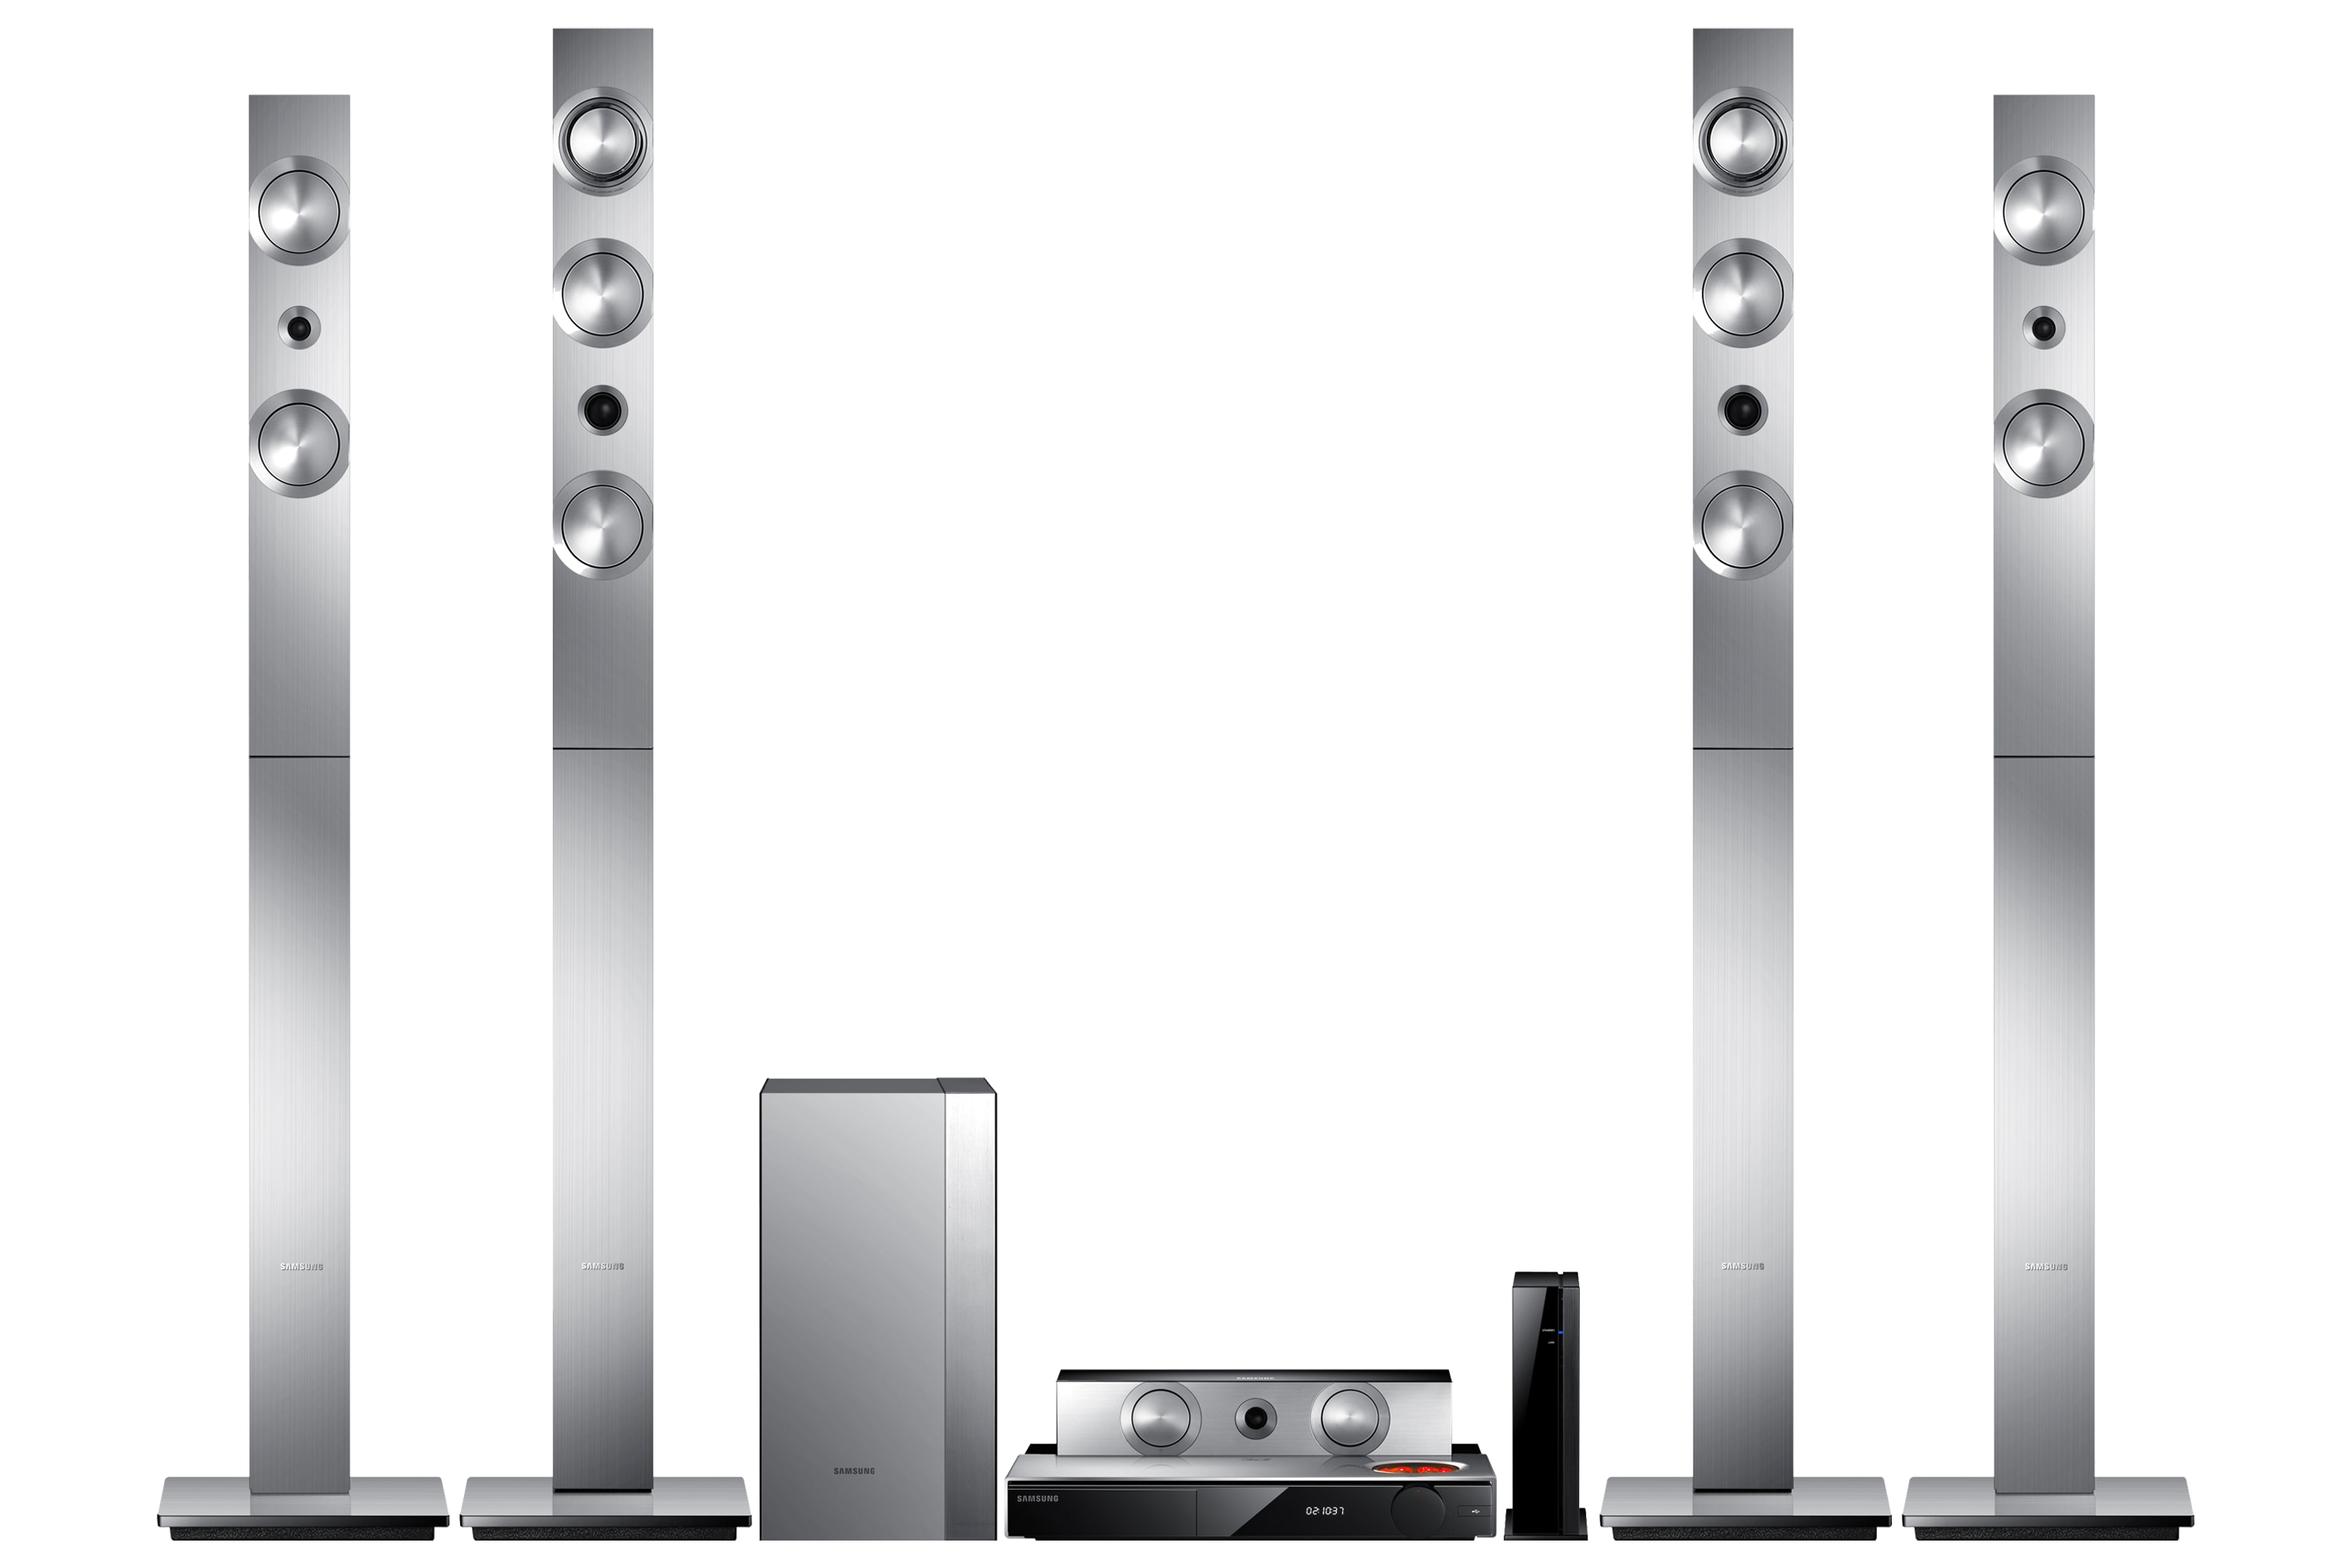 HT-F9750W Silver Front Set